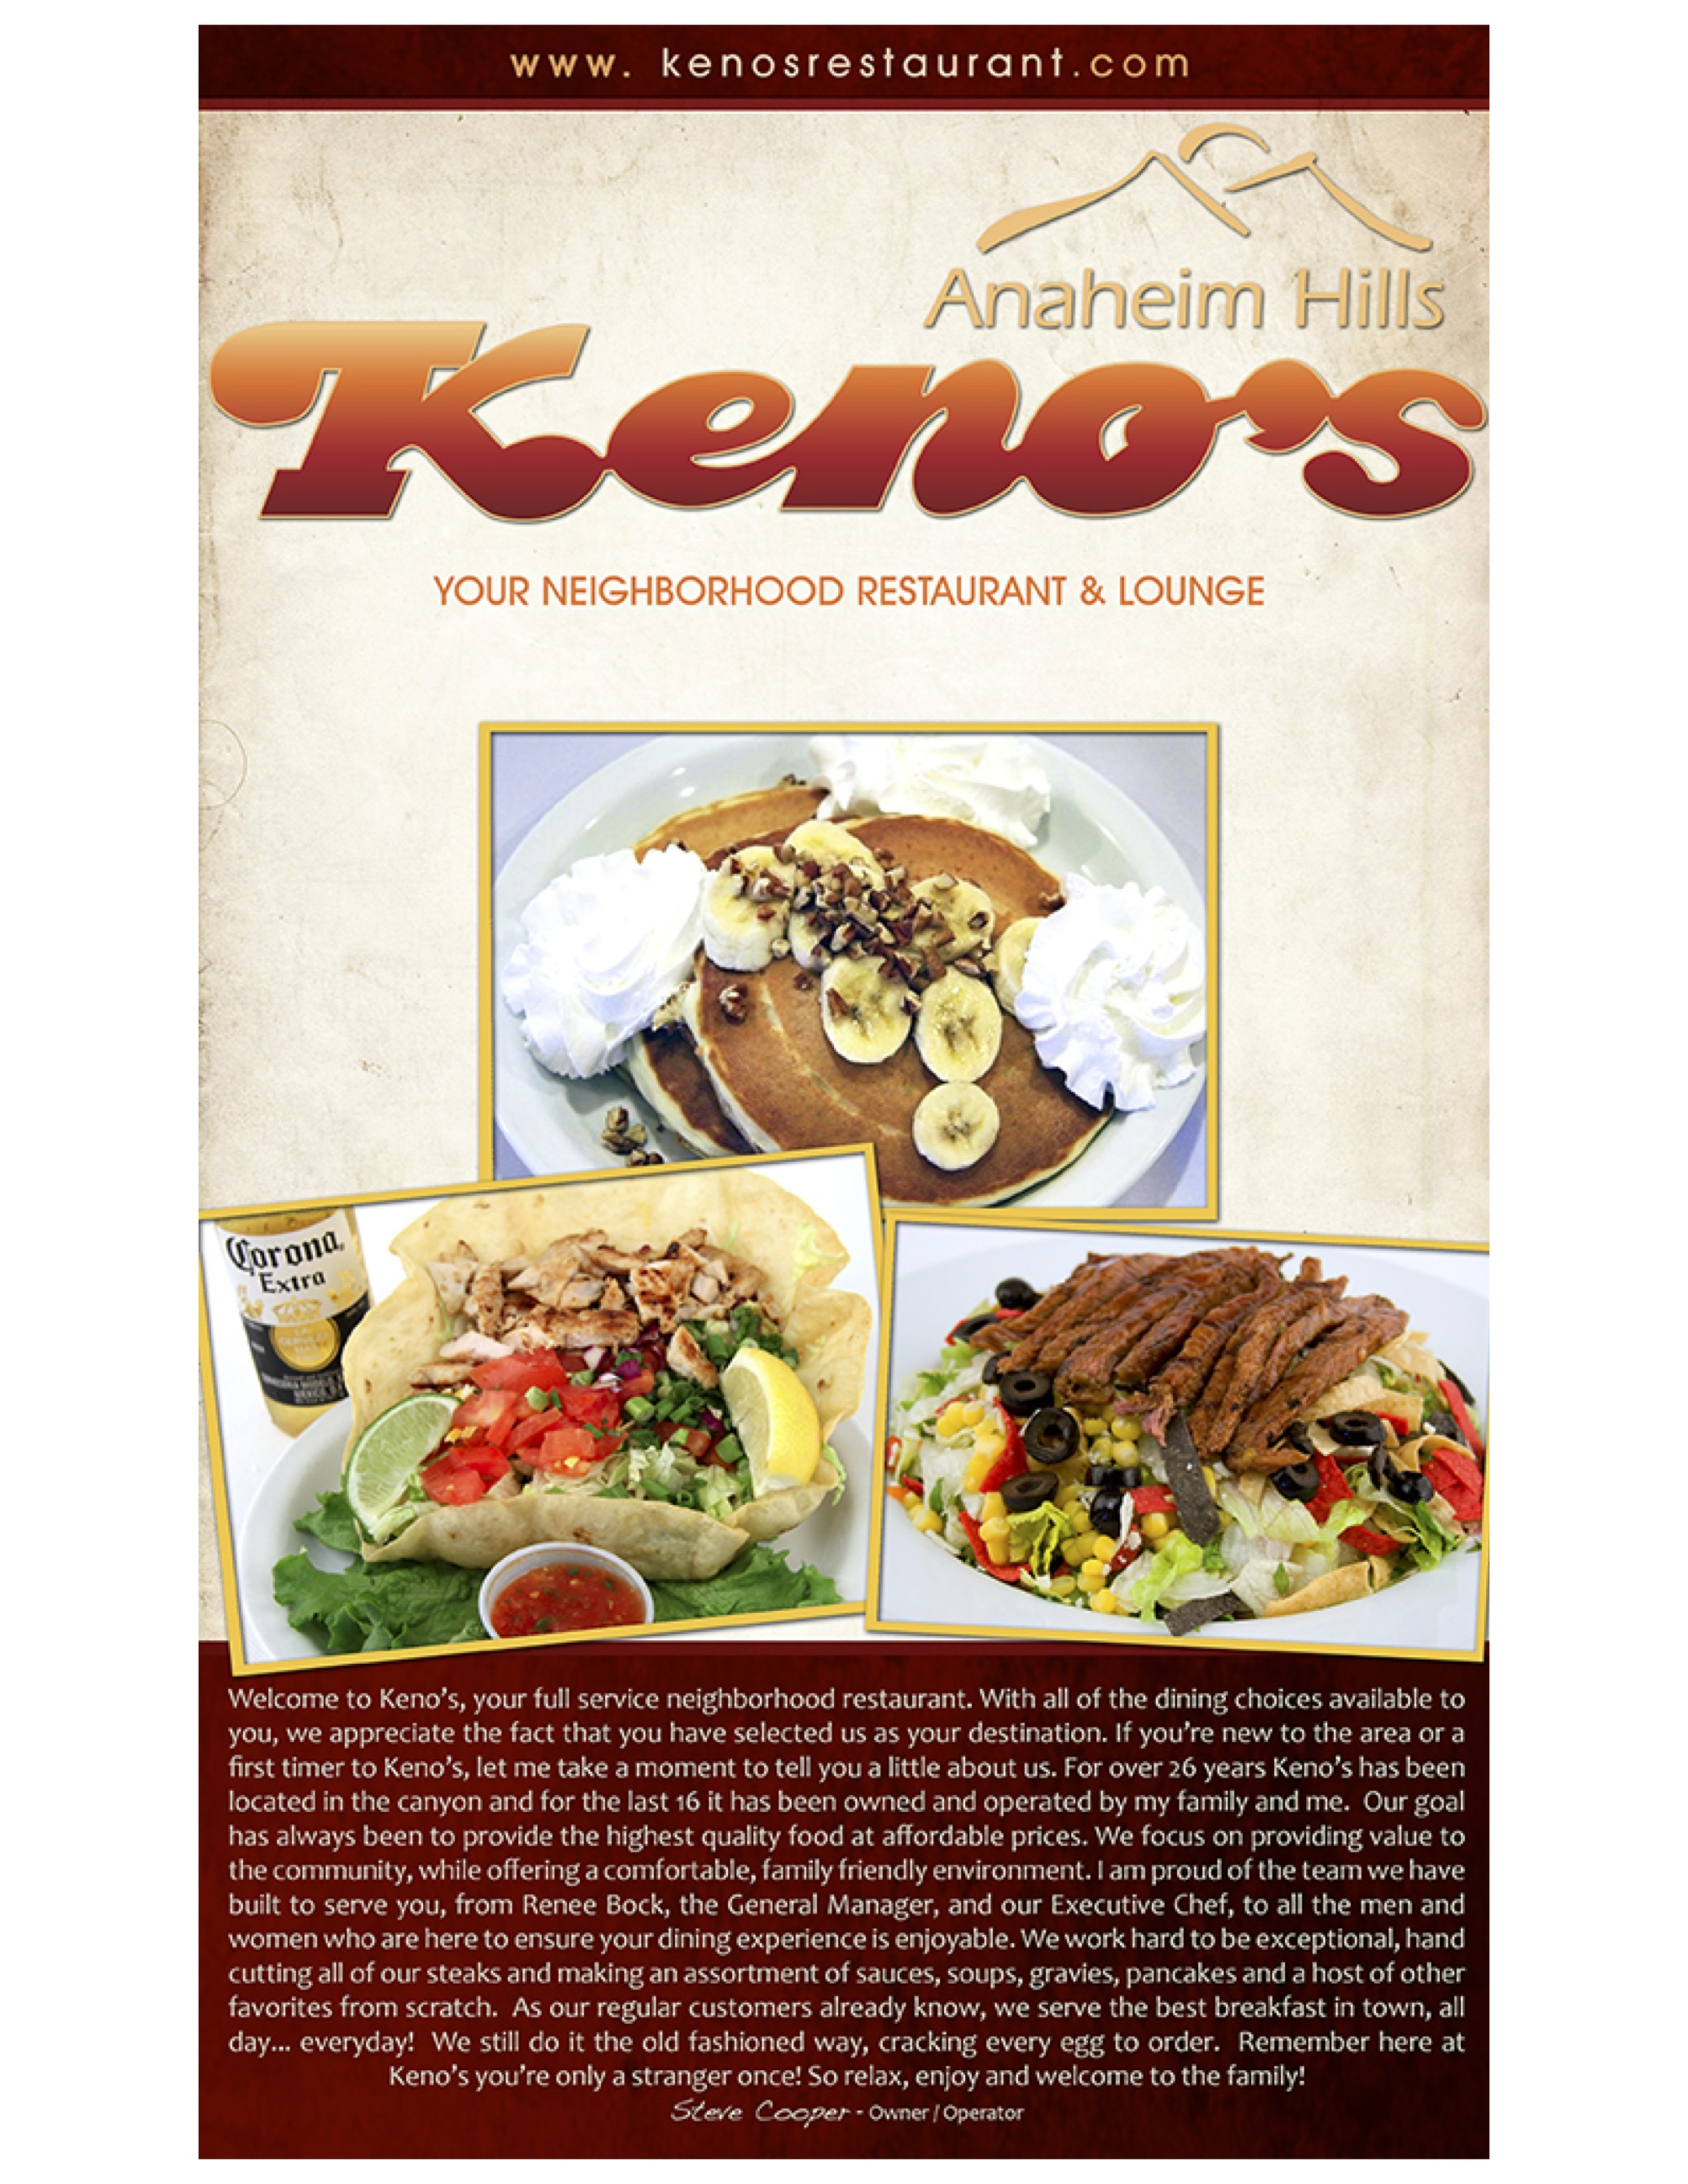 Kenos Full Menu 8.15.14- take 1.jpg